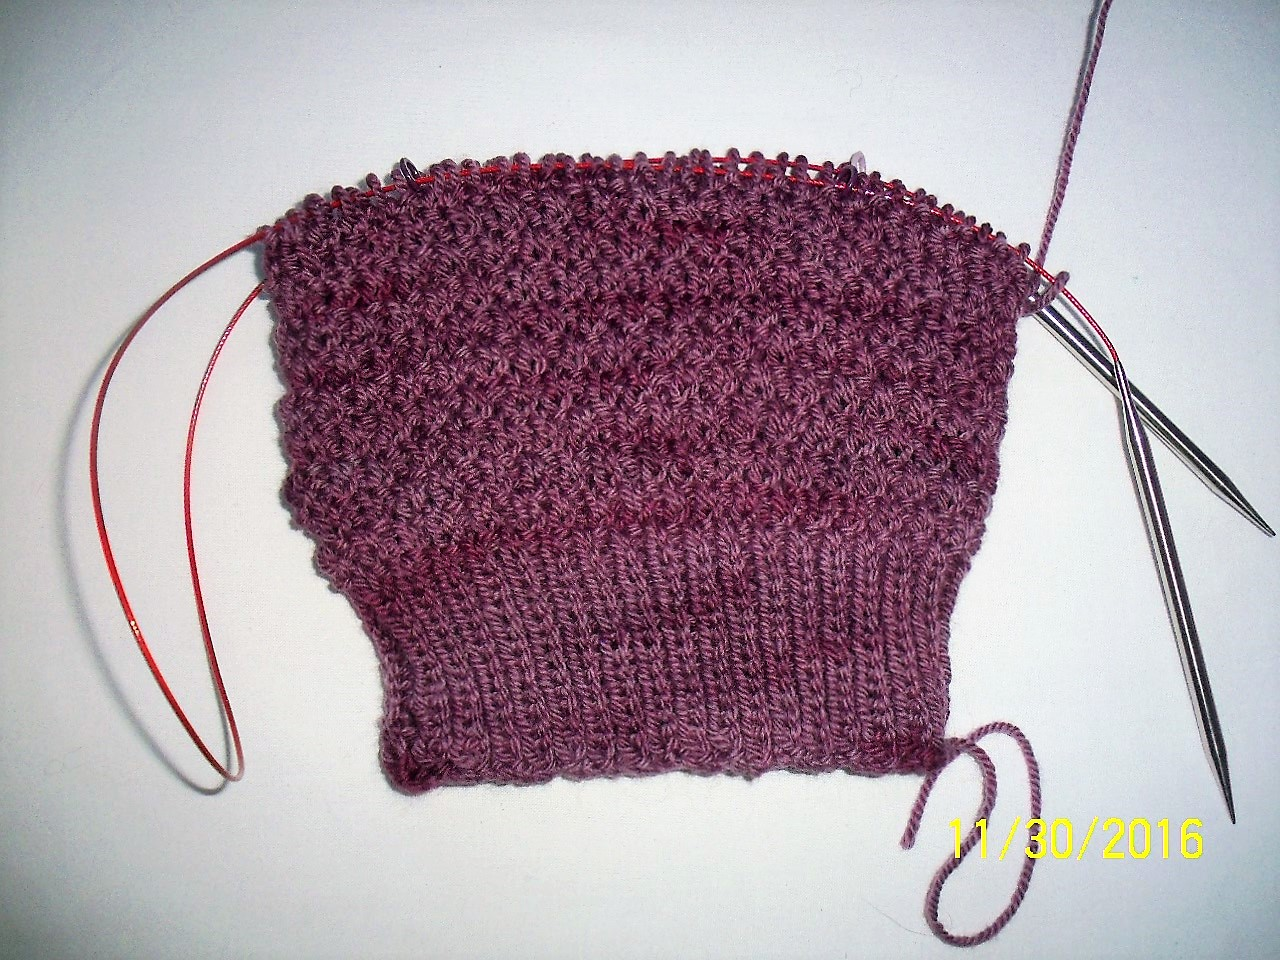 Lilies Knitting Blog: Sample Knit Beloved Hat - DONE!